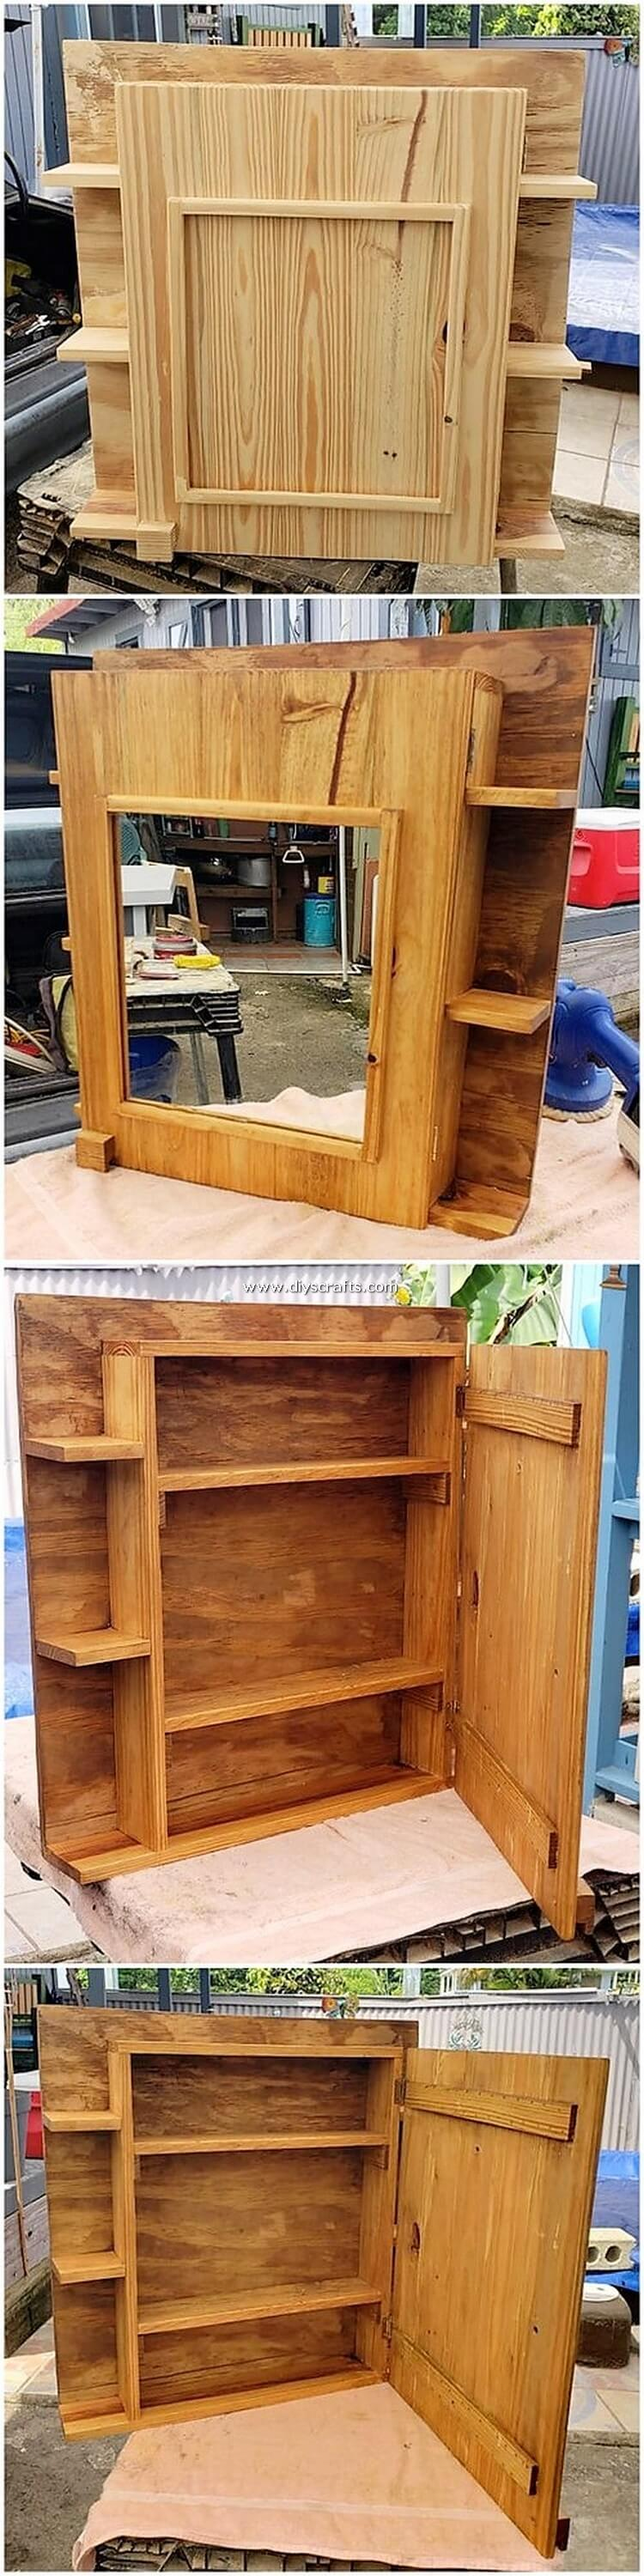 Pallet Mirror Frame with Cabinet